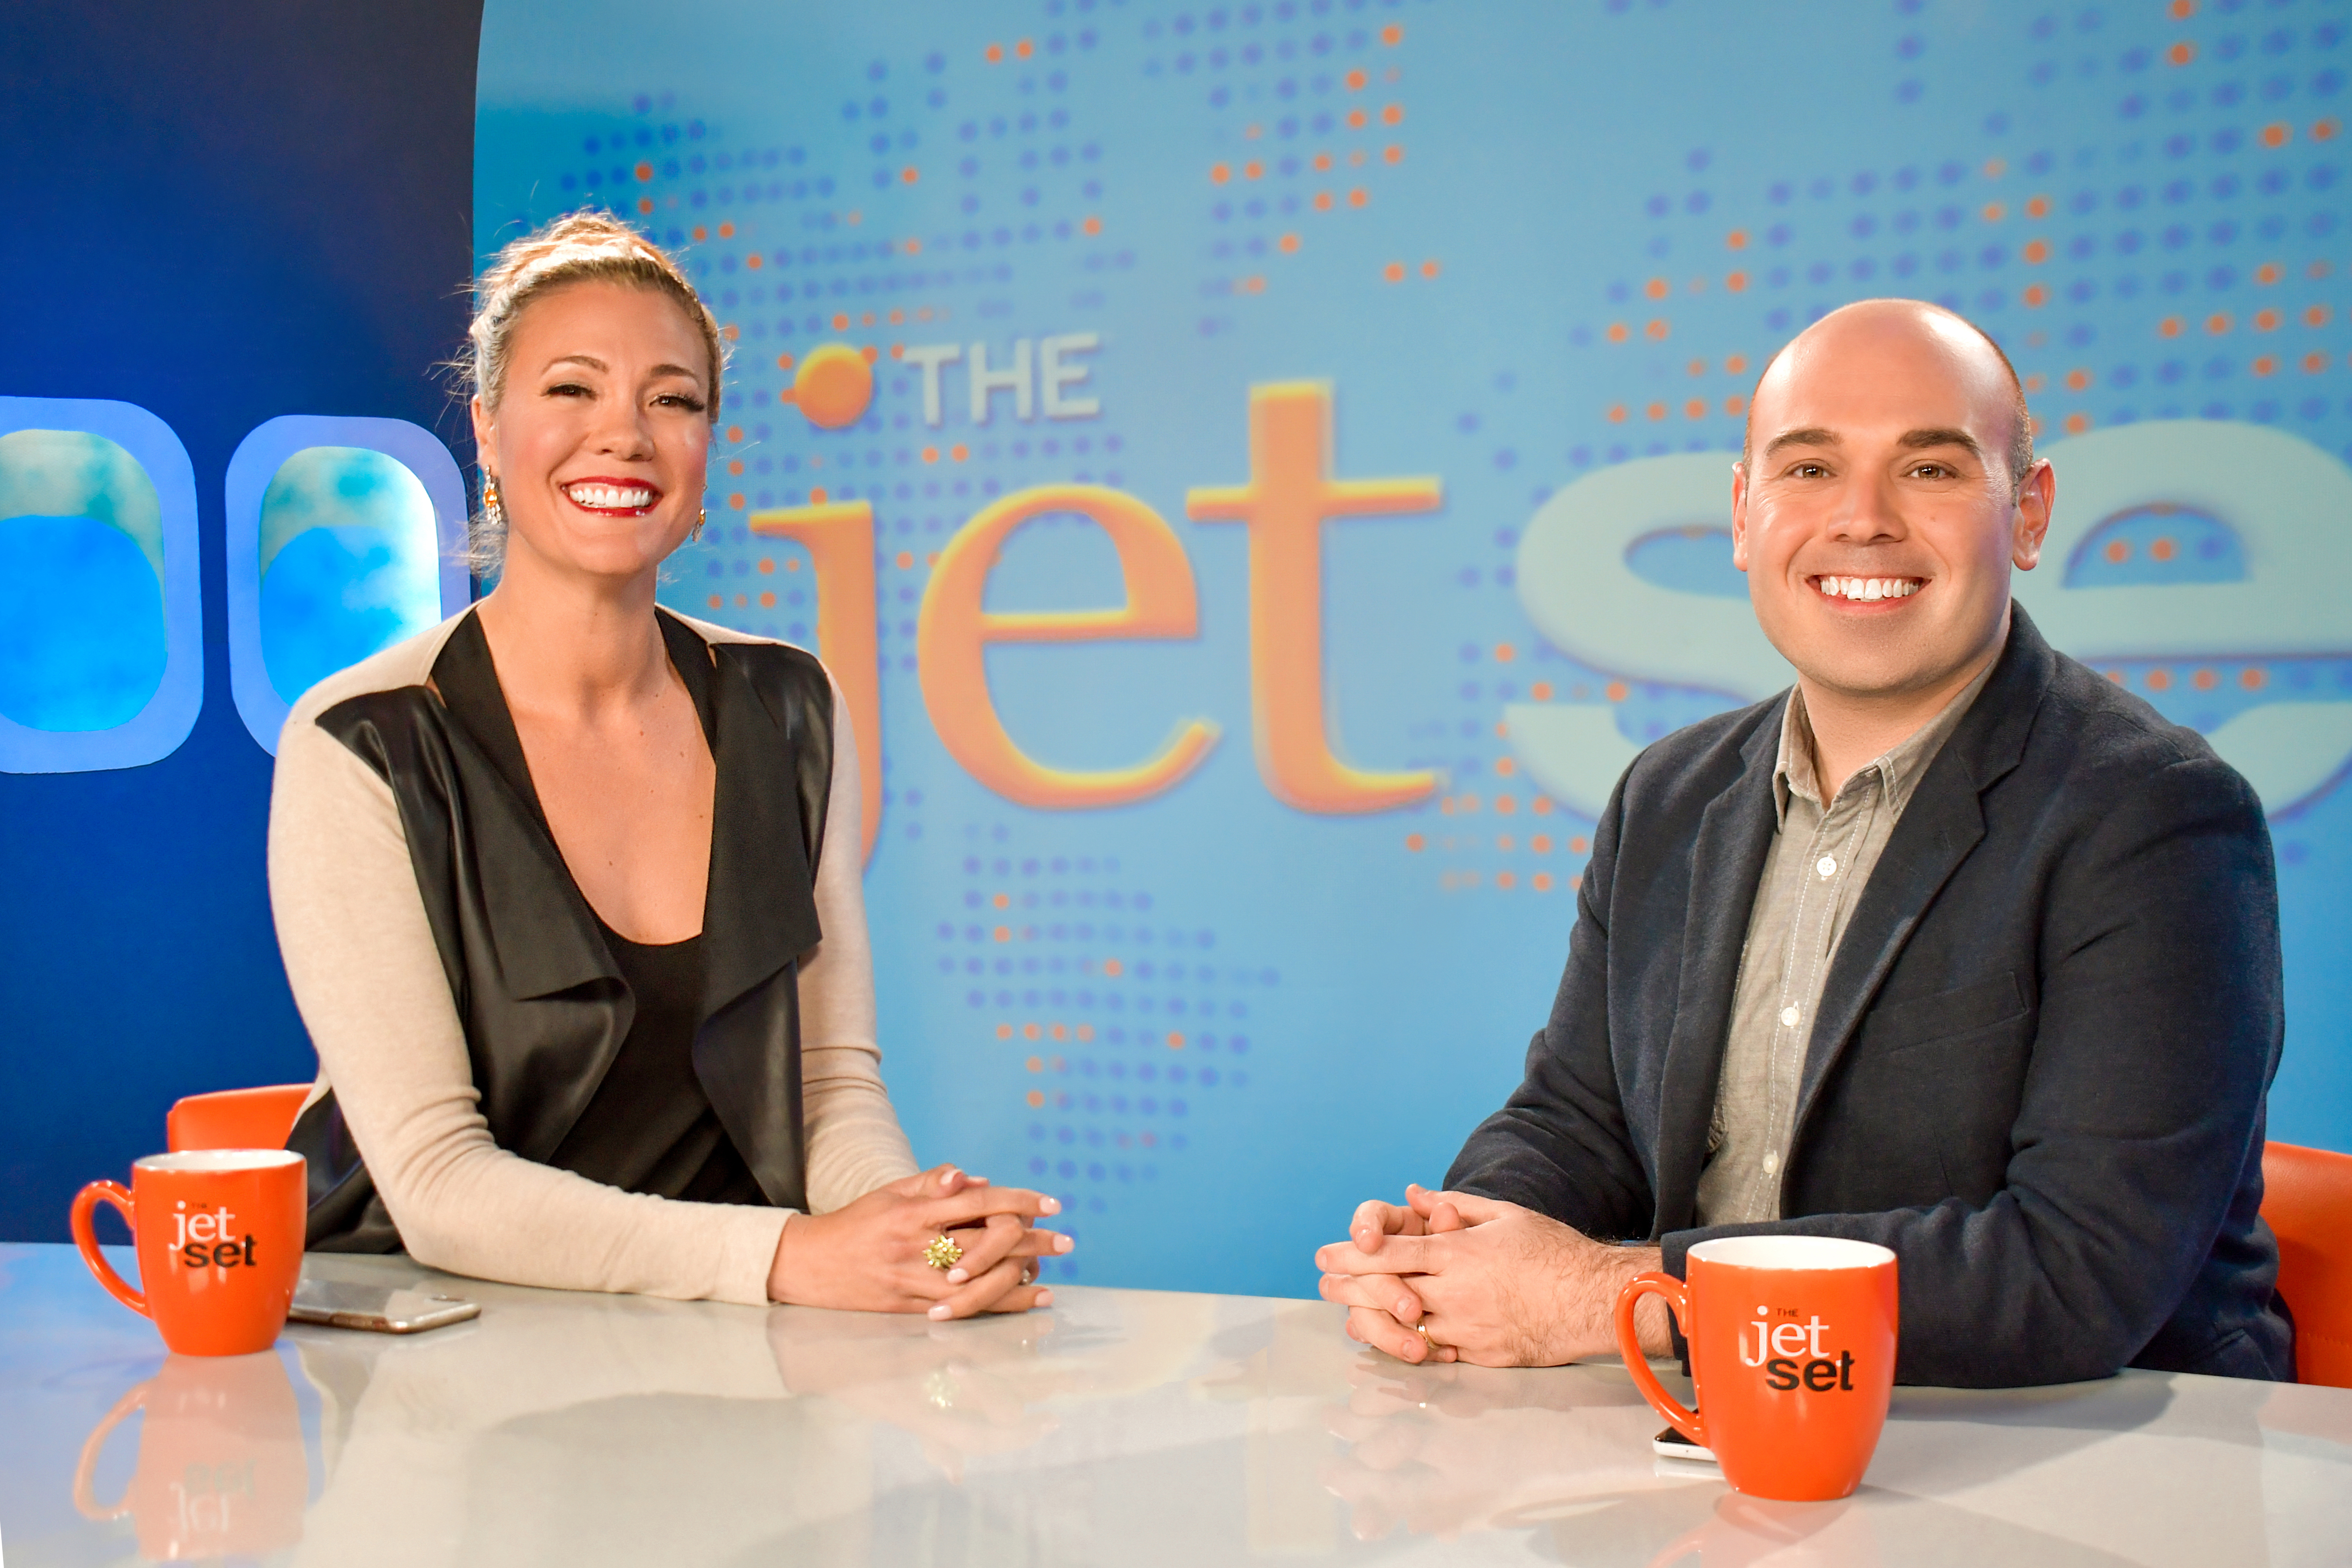 Travel & Lifestyle Show 'The Jet Set' Cleared for Season 6